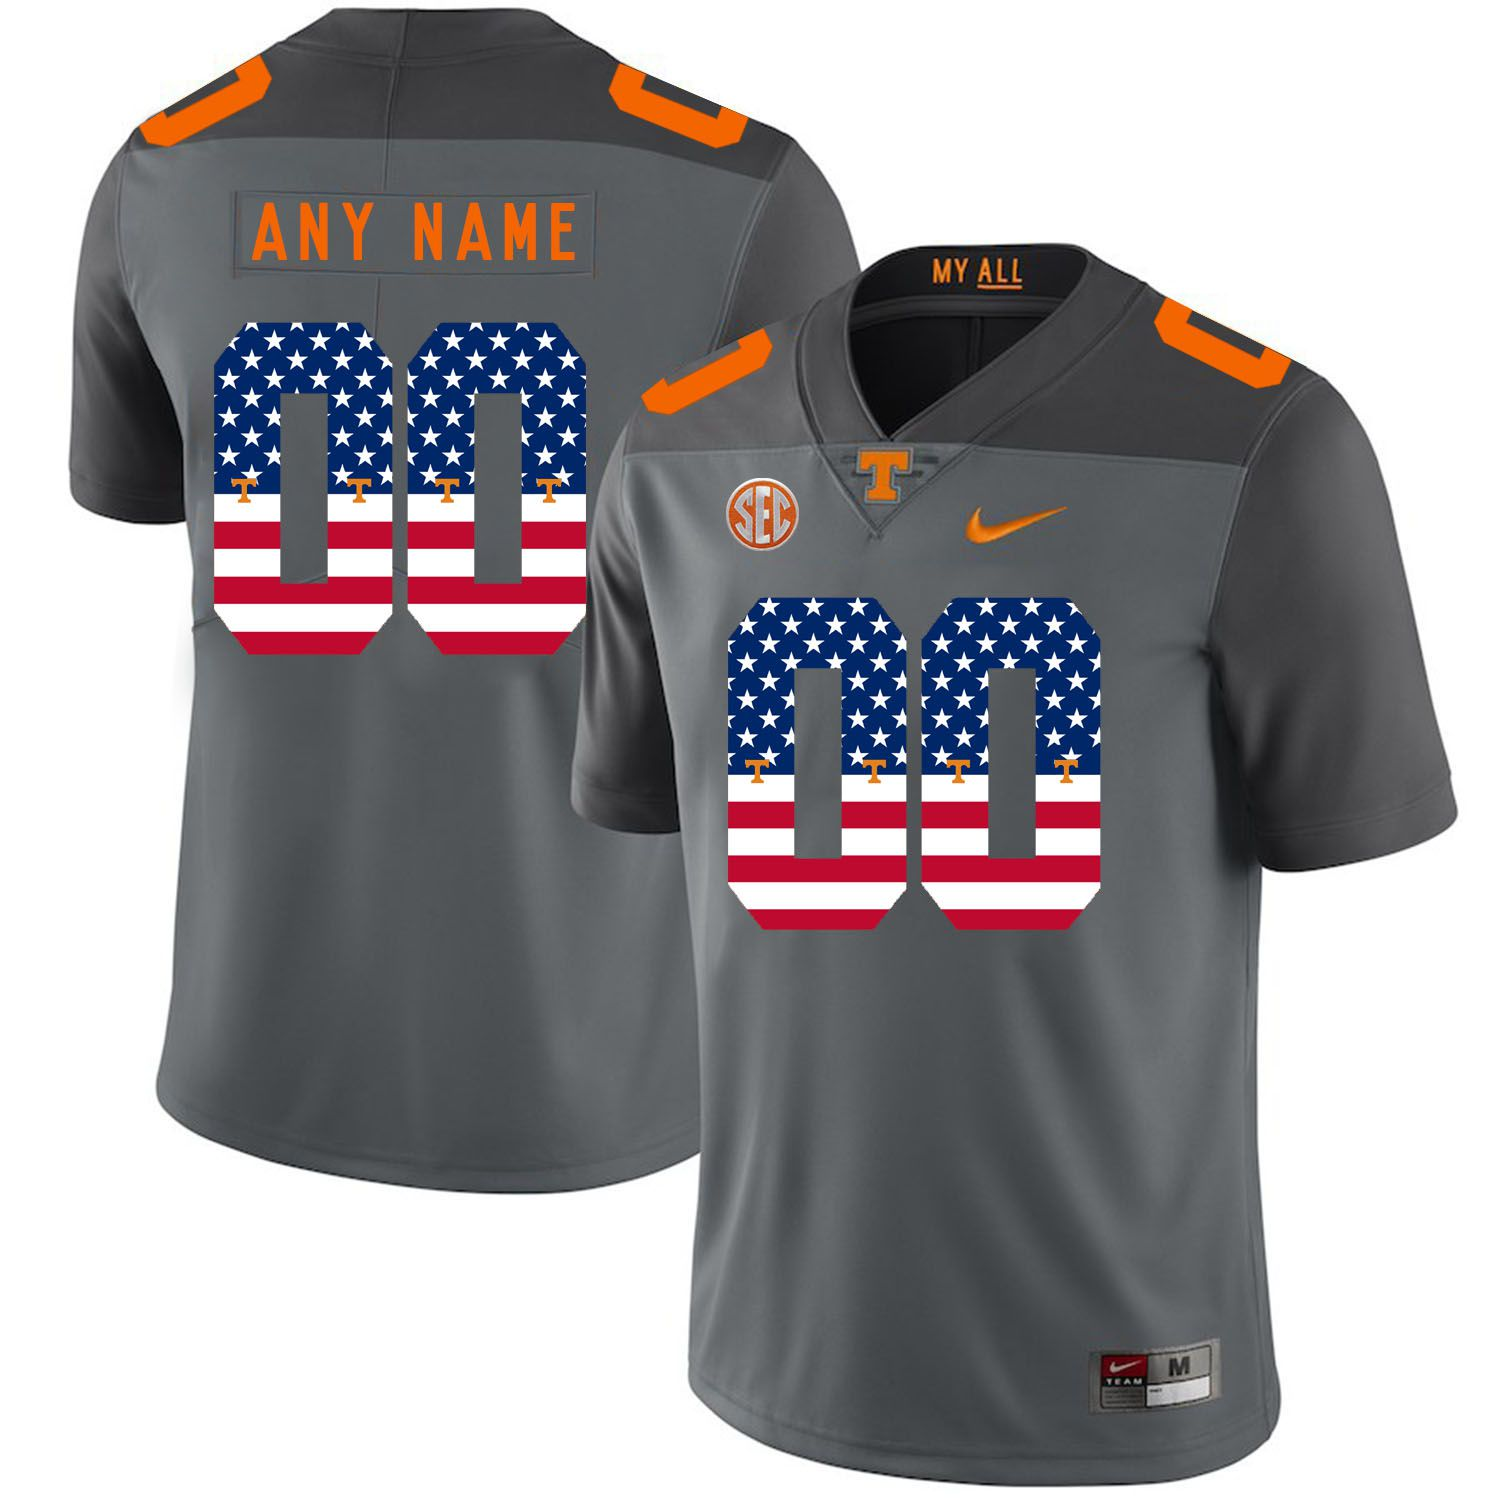 Men Tennessee Volunteers 00 Any name Grey Flag Customized NCAA Jerseys